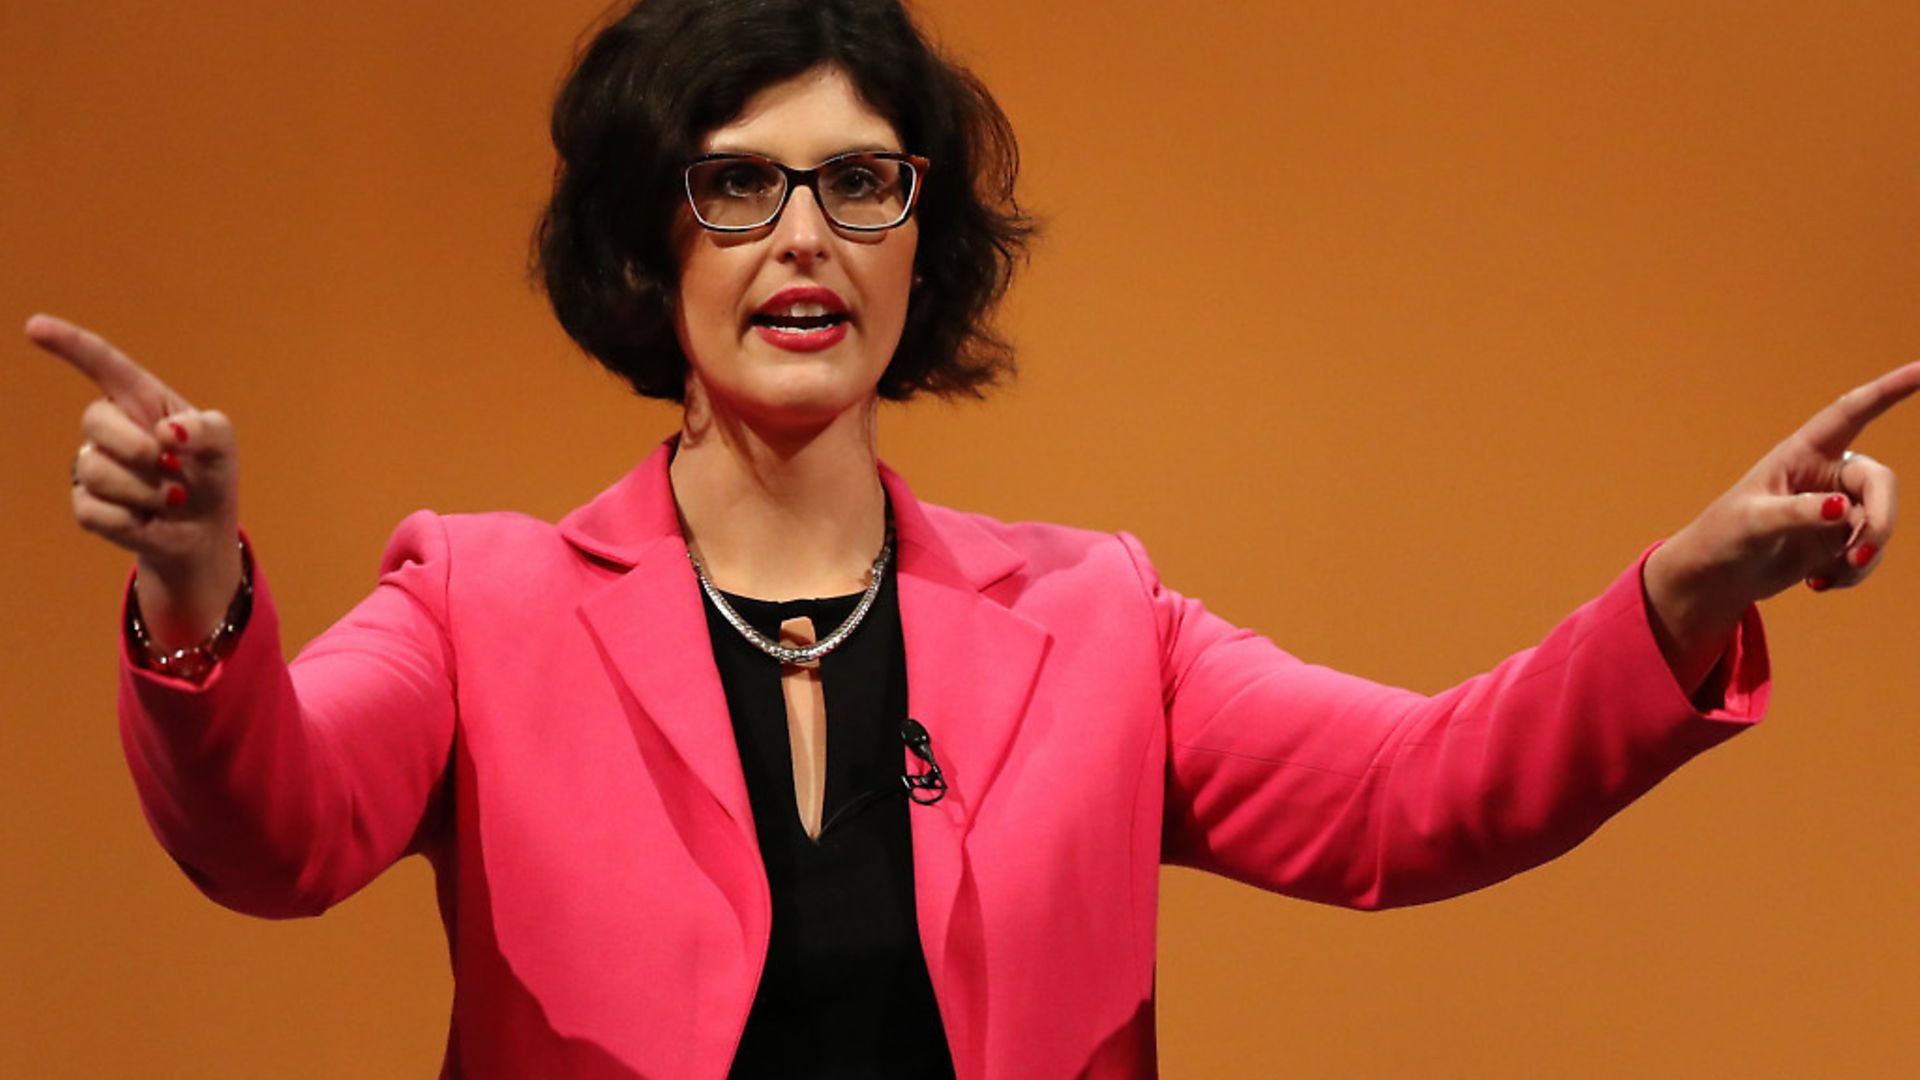 Layla Moran MP makes a speech at the Liberal Democrats conference at the Bournemouth International Centre. - Credit: PA Archive/PA Images